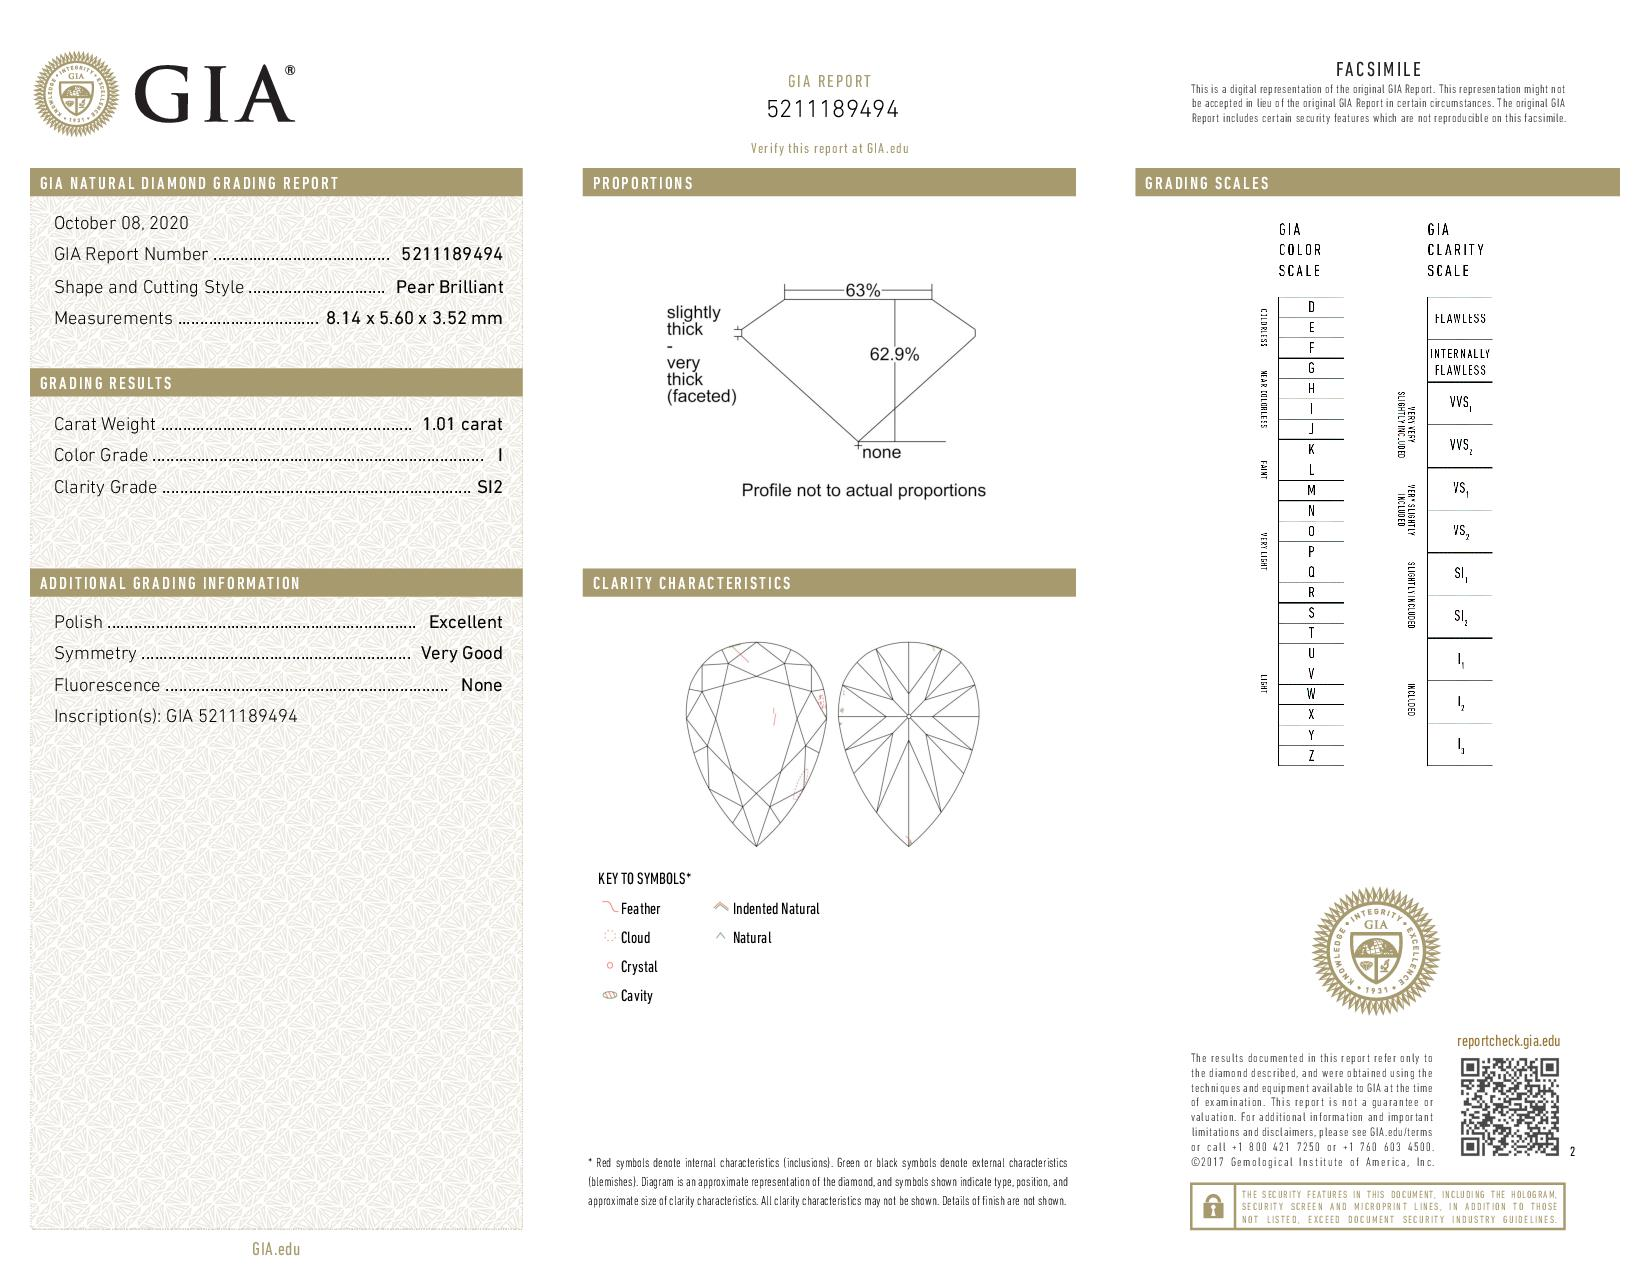 This is a 1.01 carat pear shape, I color, SI2 clarity natural diamond accompanied by a GIA grading report.